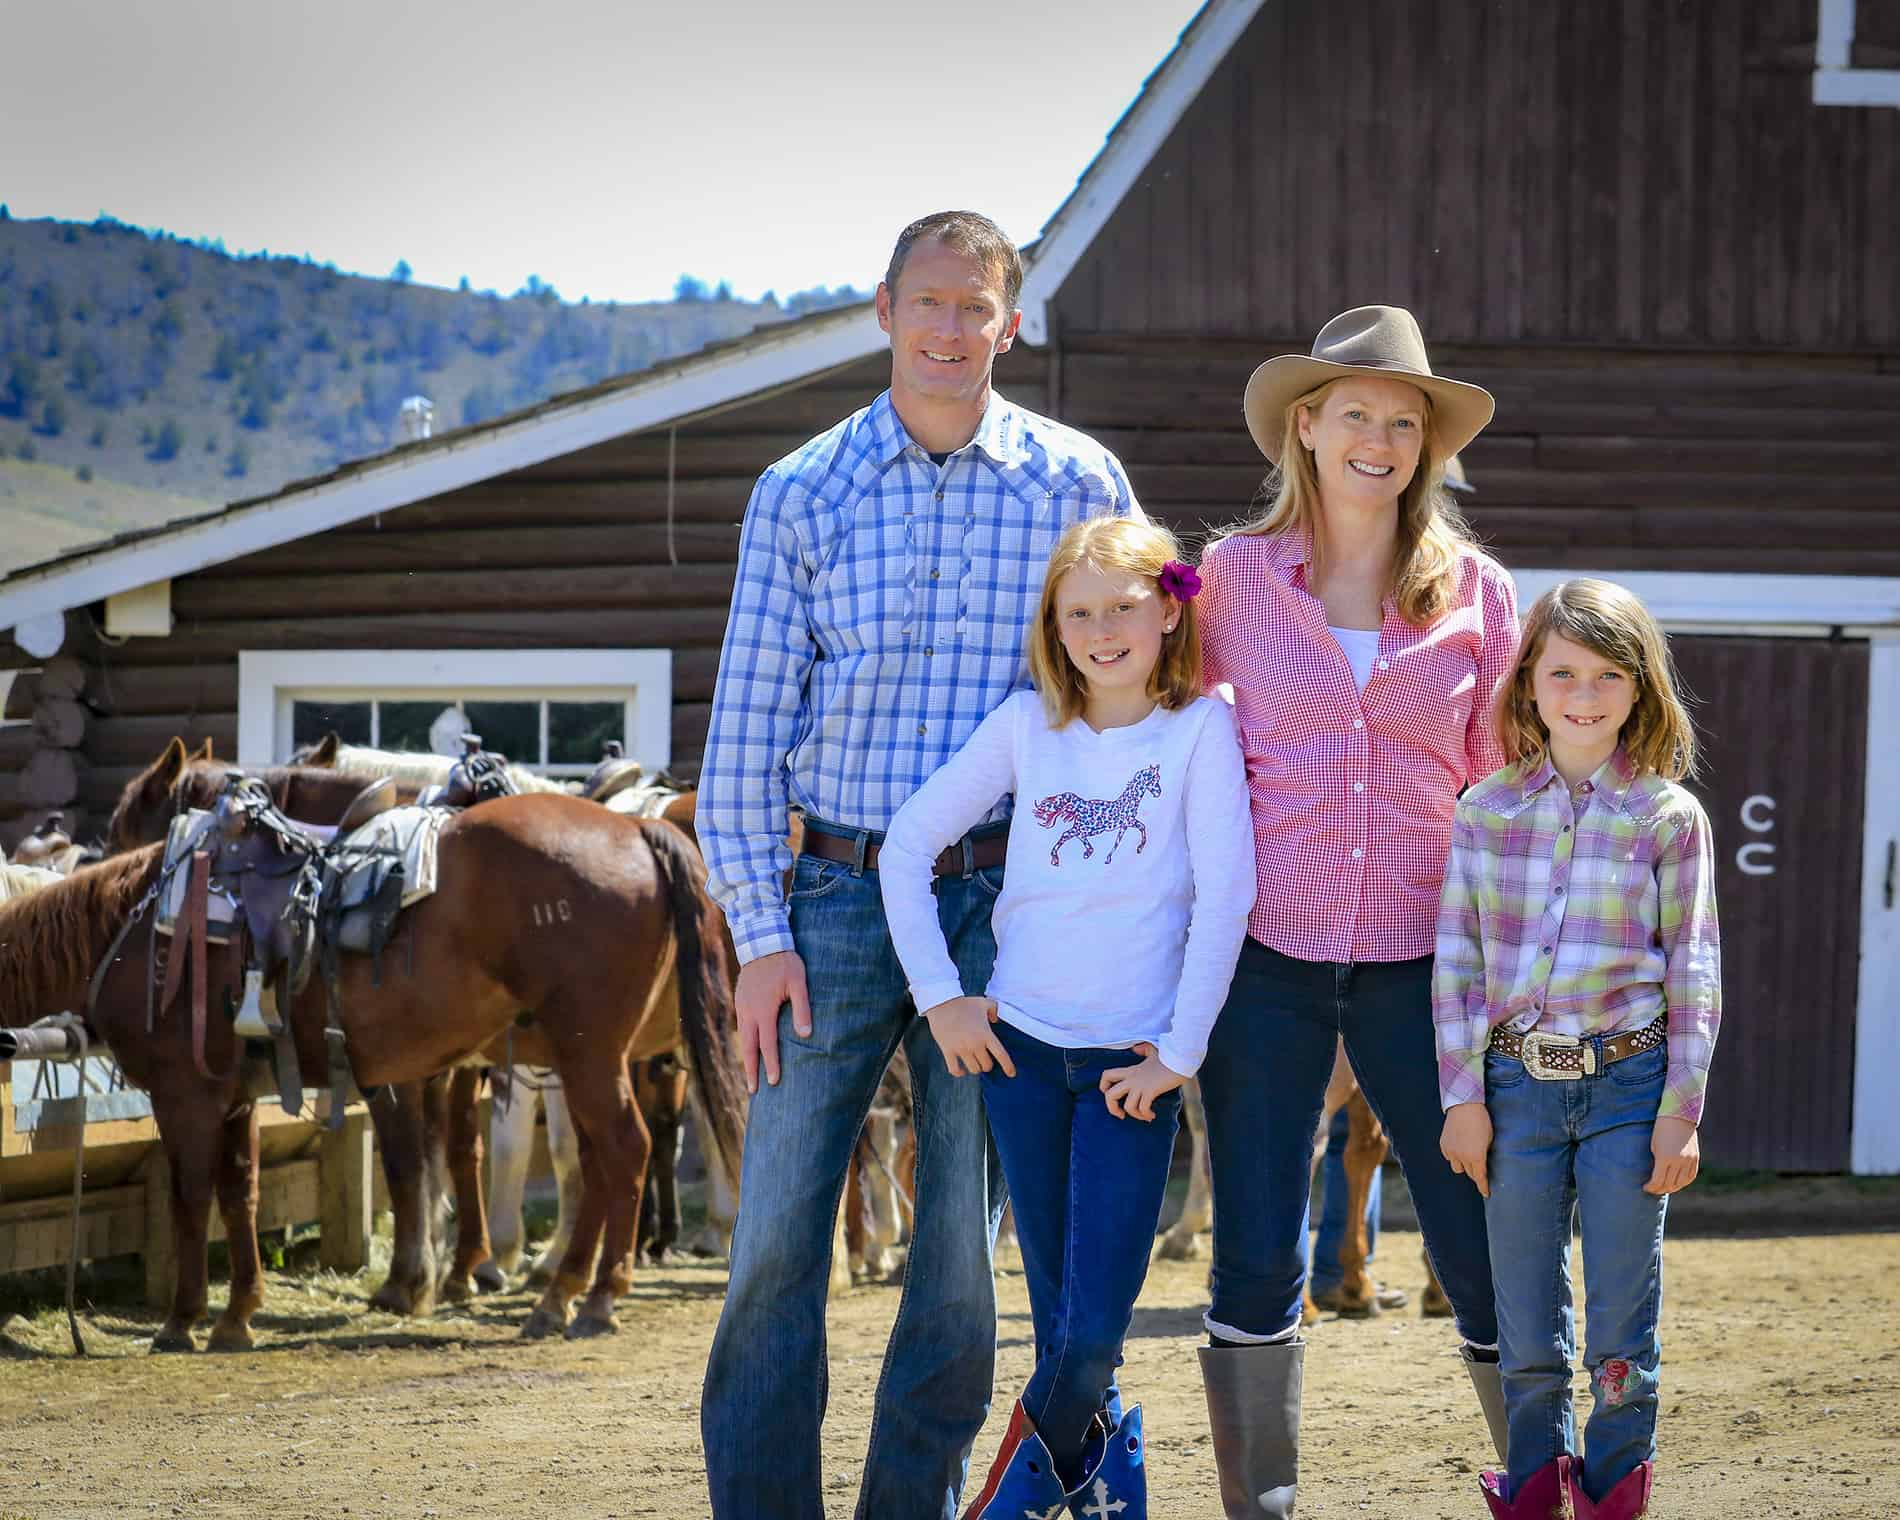 bond with family at the dude ranch